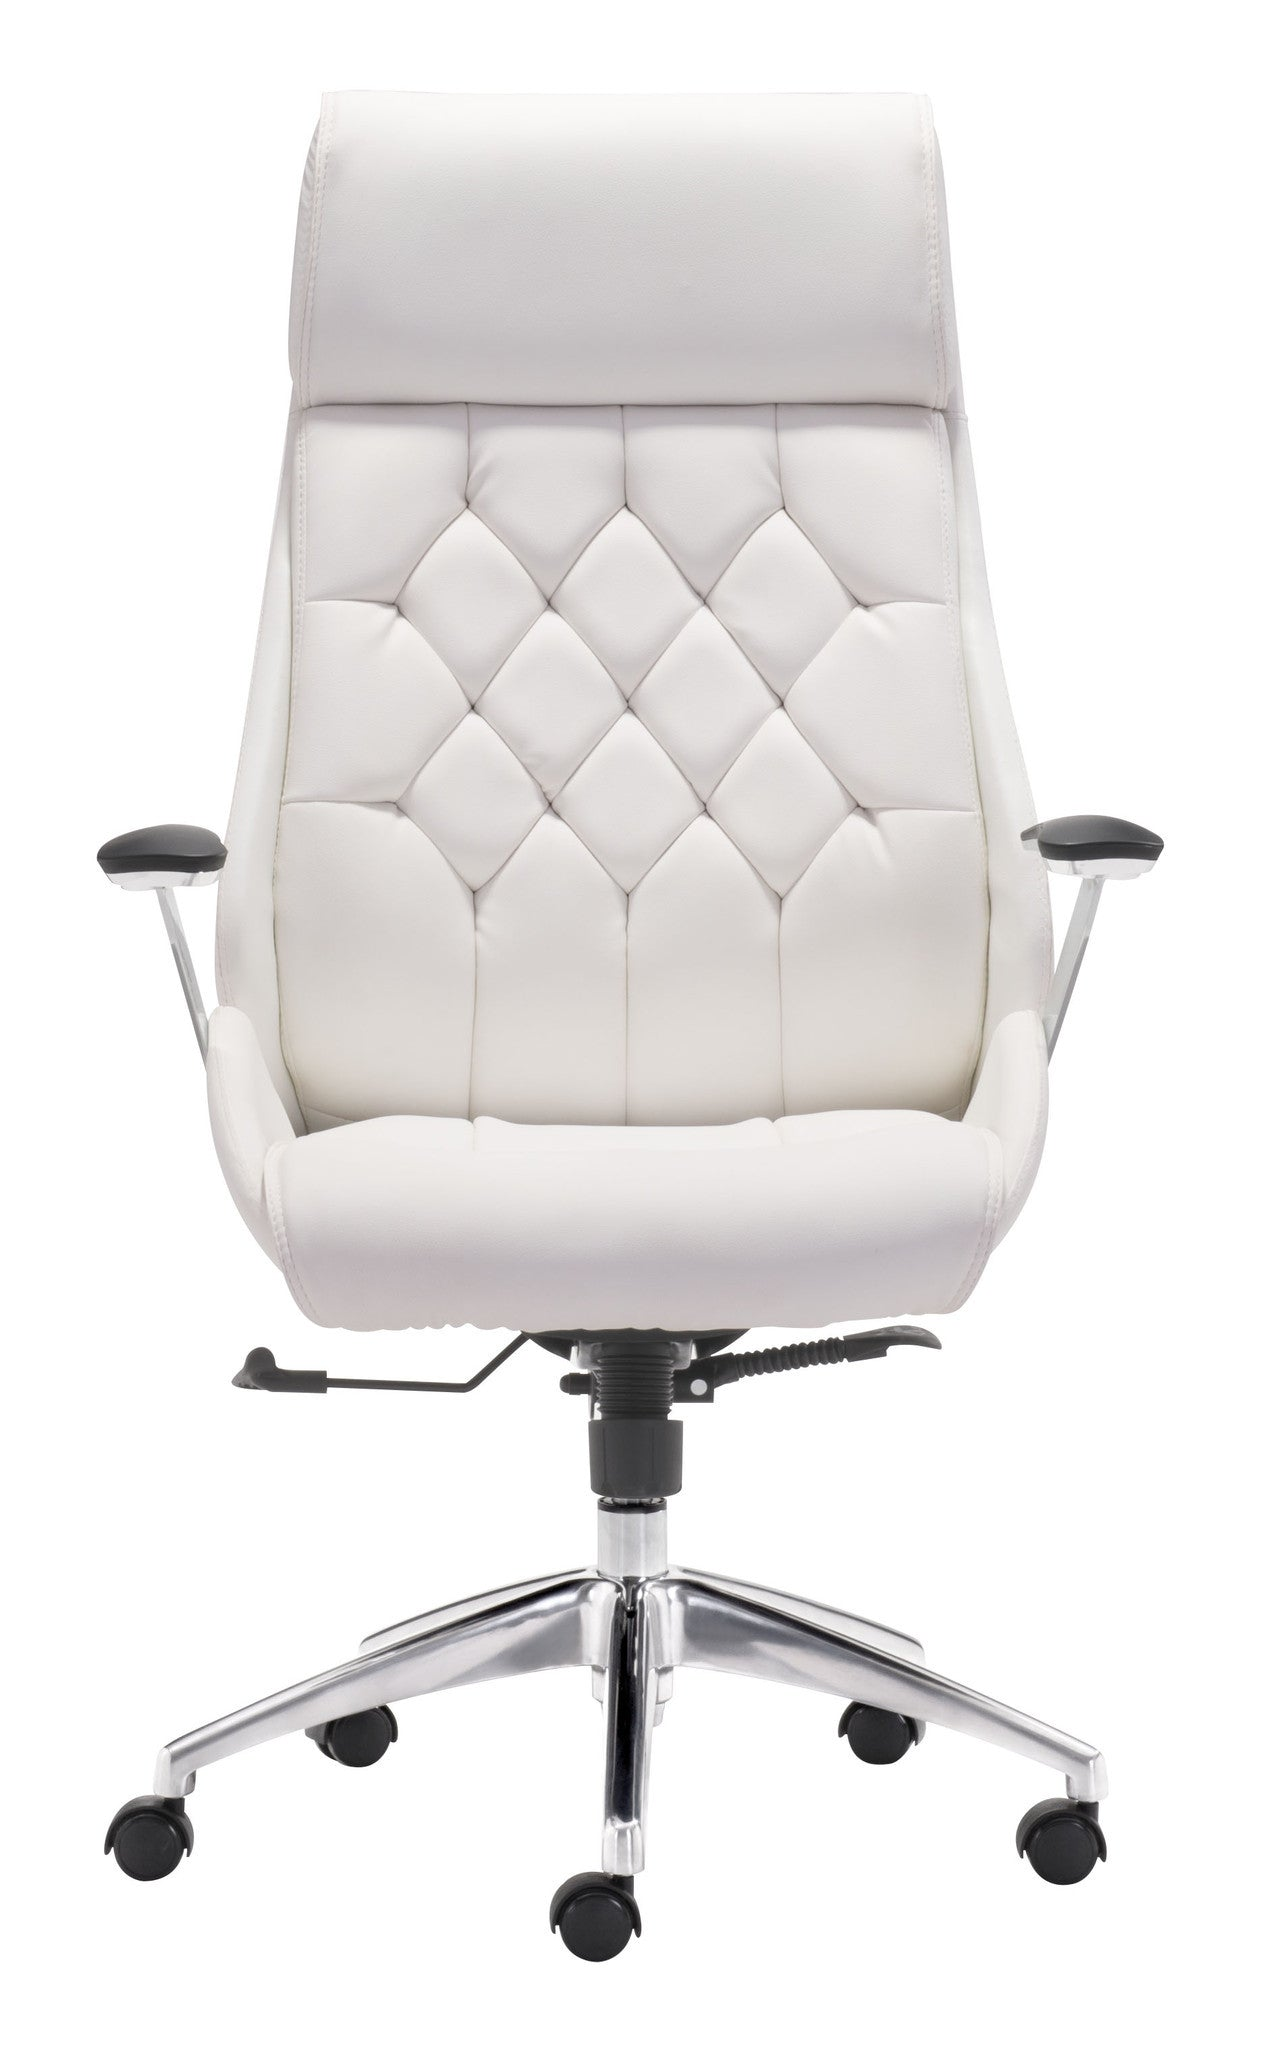 ... Boutique Office Chair in White Tufted Leatherette-Office Chairs-Alan  Decor ... - Modern, Contemporary, Rustic & Industrial Office Chairs Alan Decor